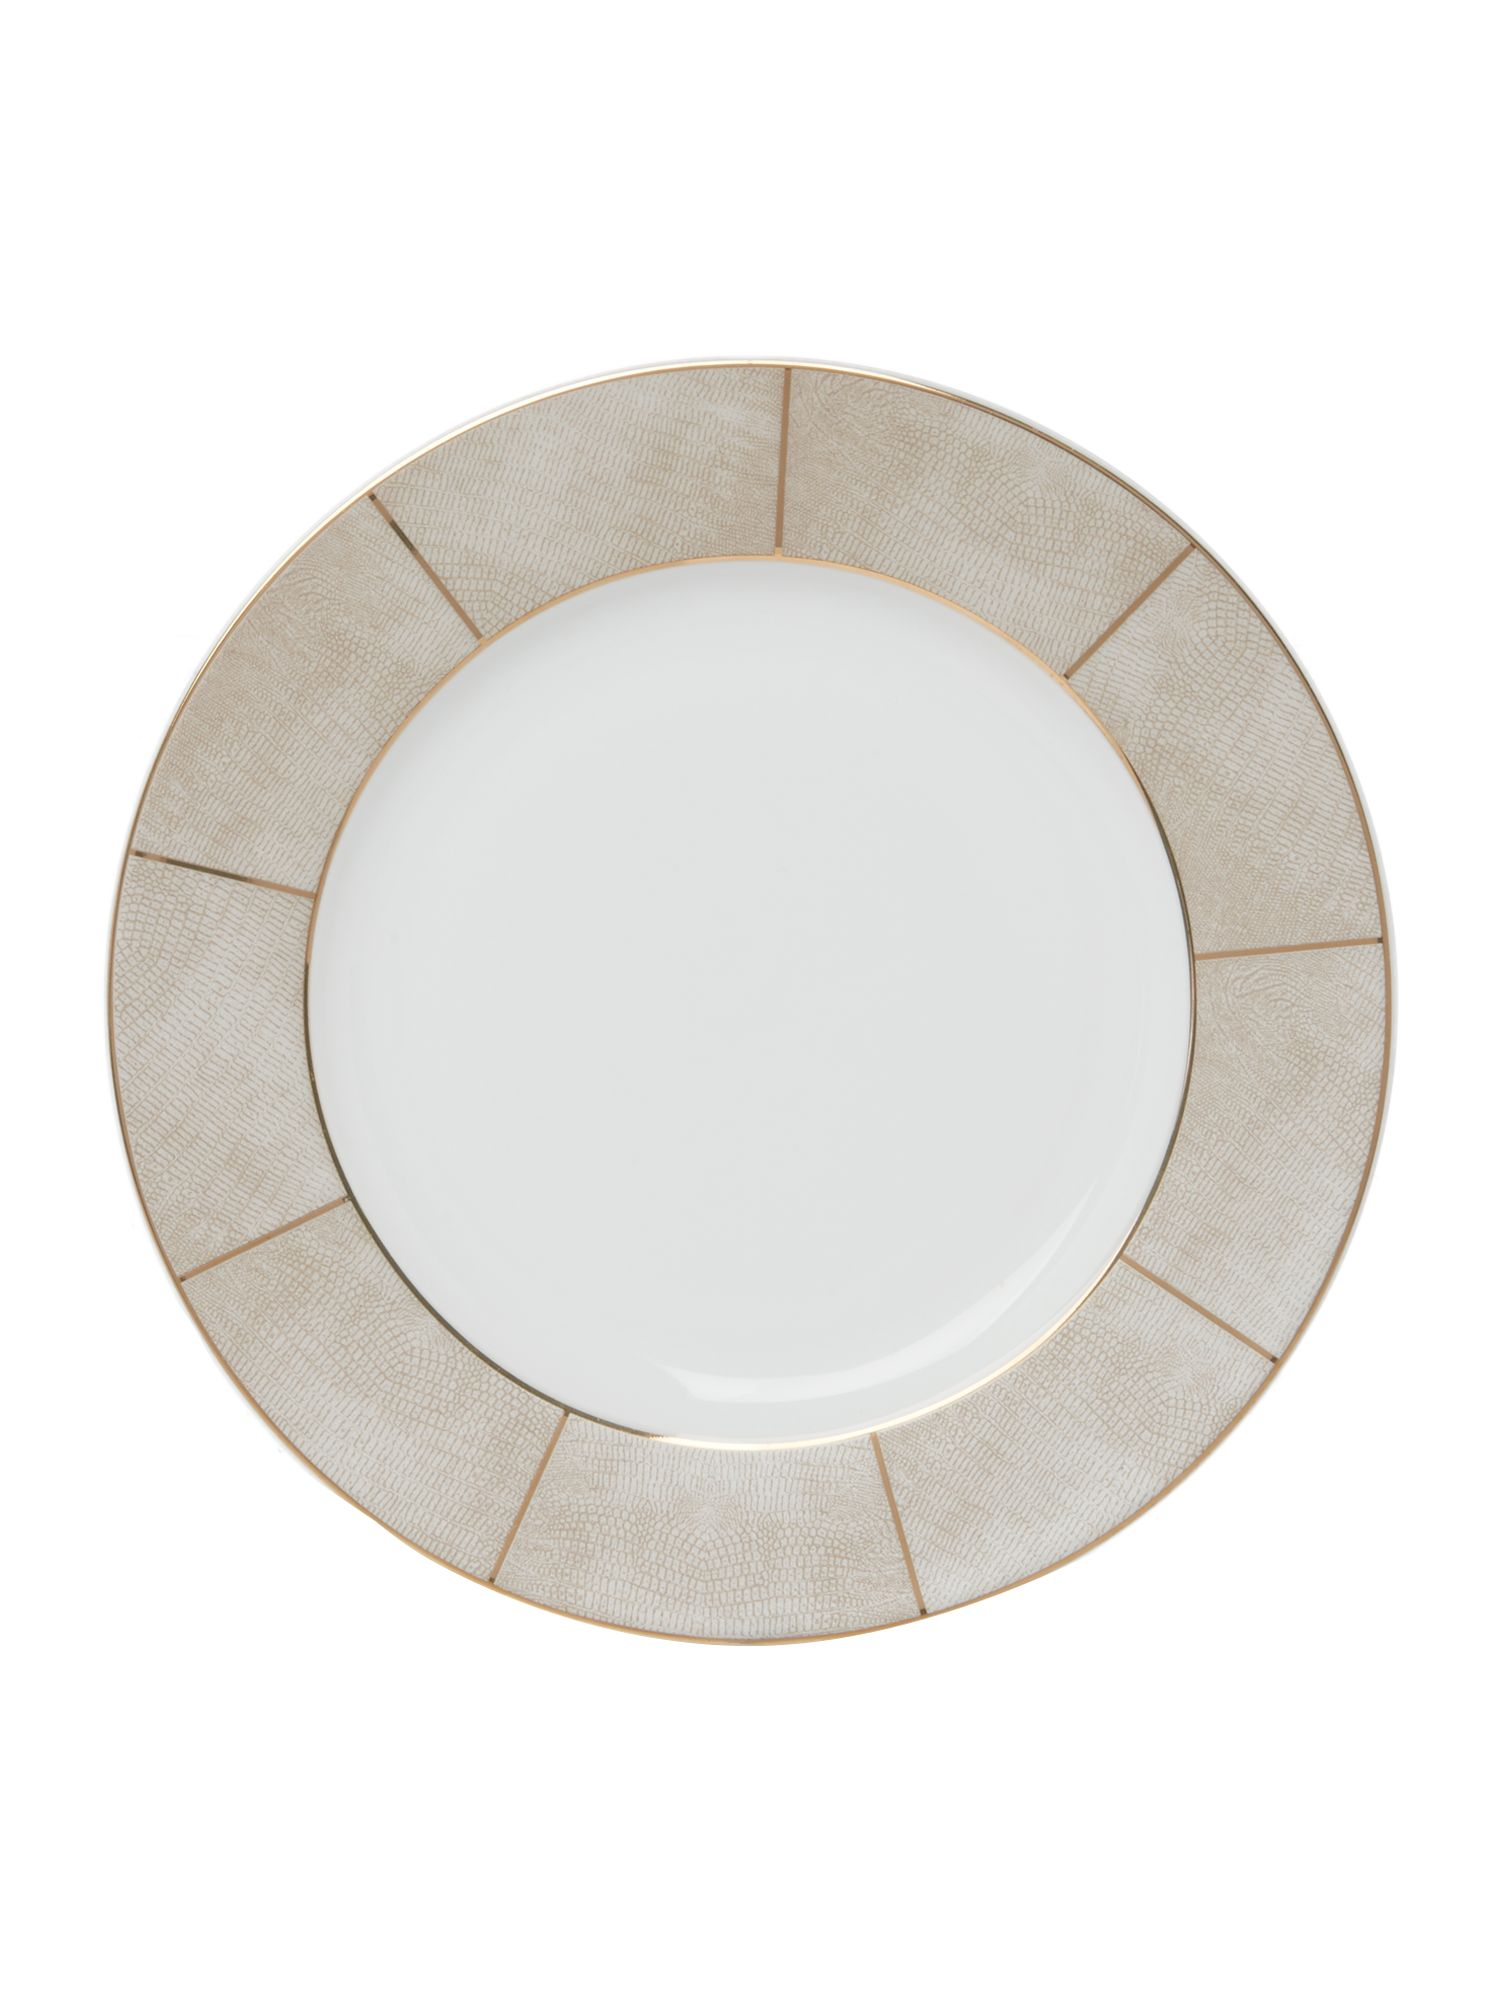 Casa Couture Casa Couture Luxe side plate